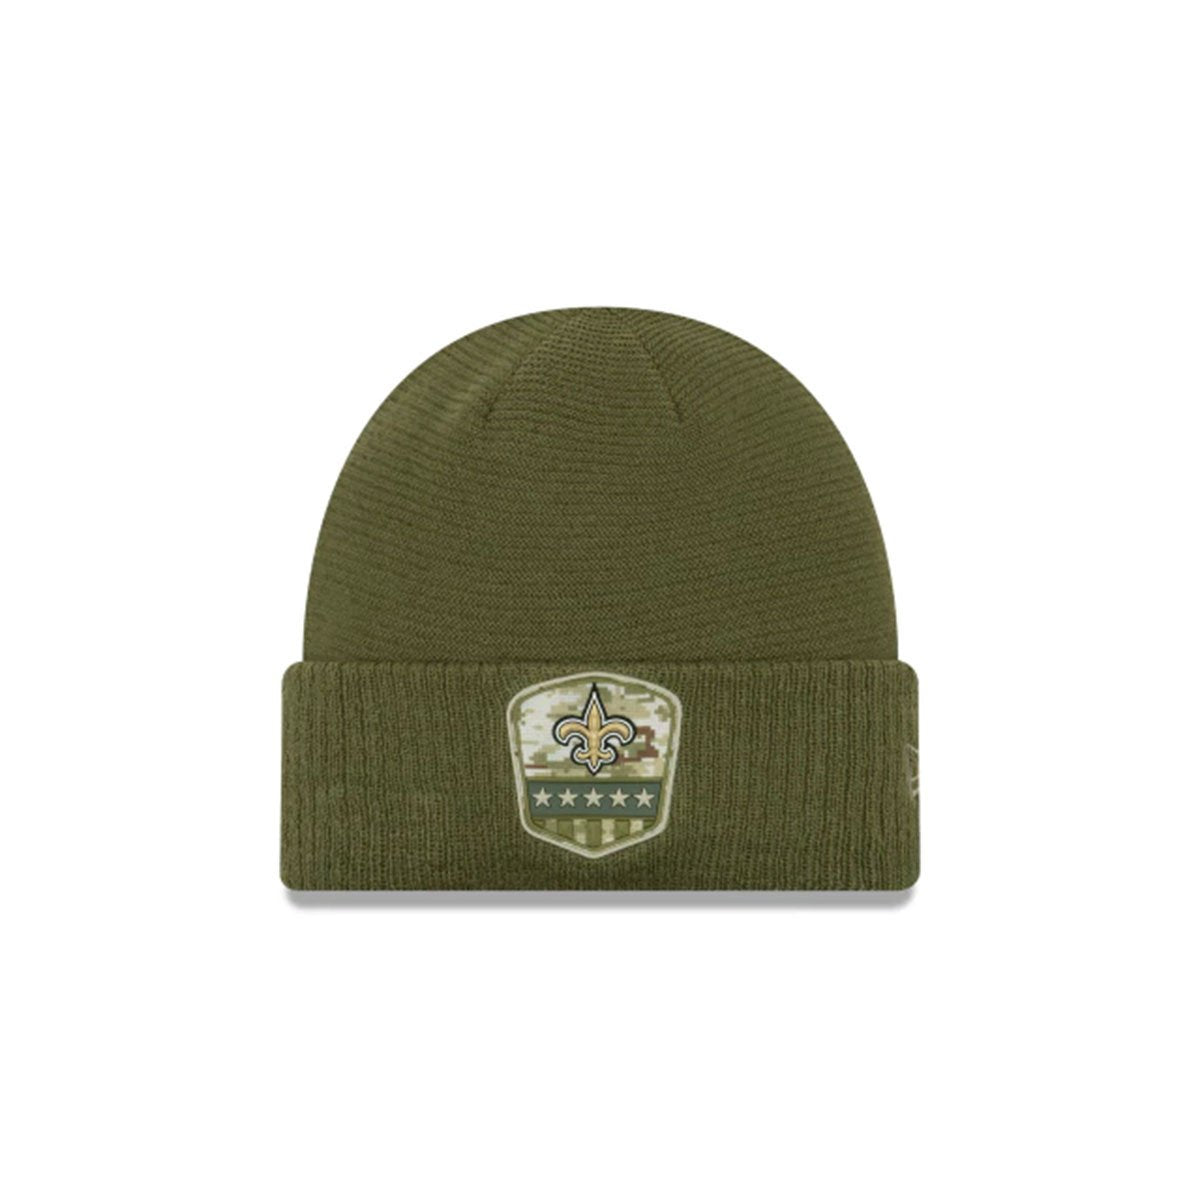 NEW ORLEANS SAINTS SALUTE TO SERVICE CUFF KNIT GREEN/GOLD